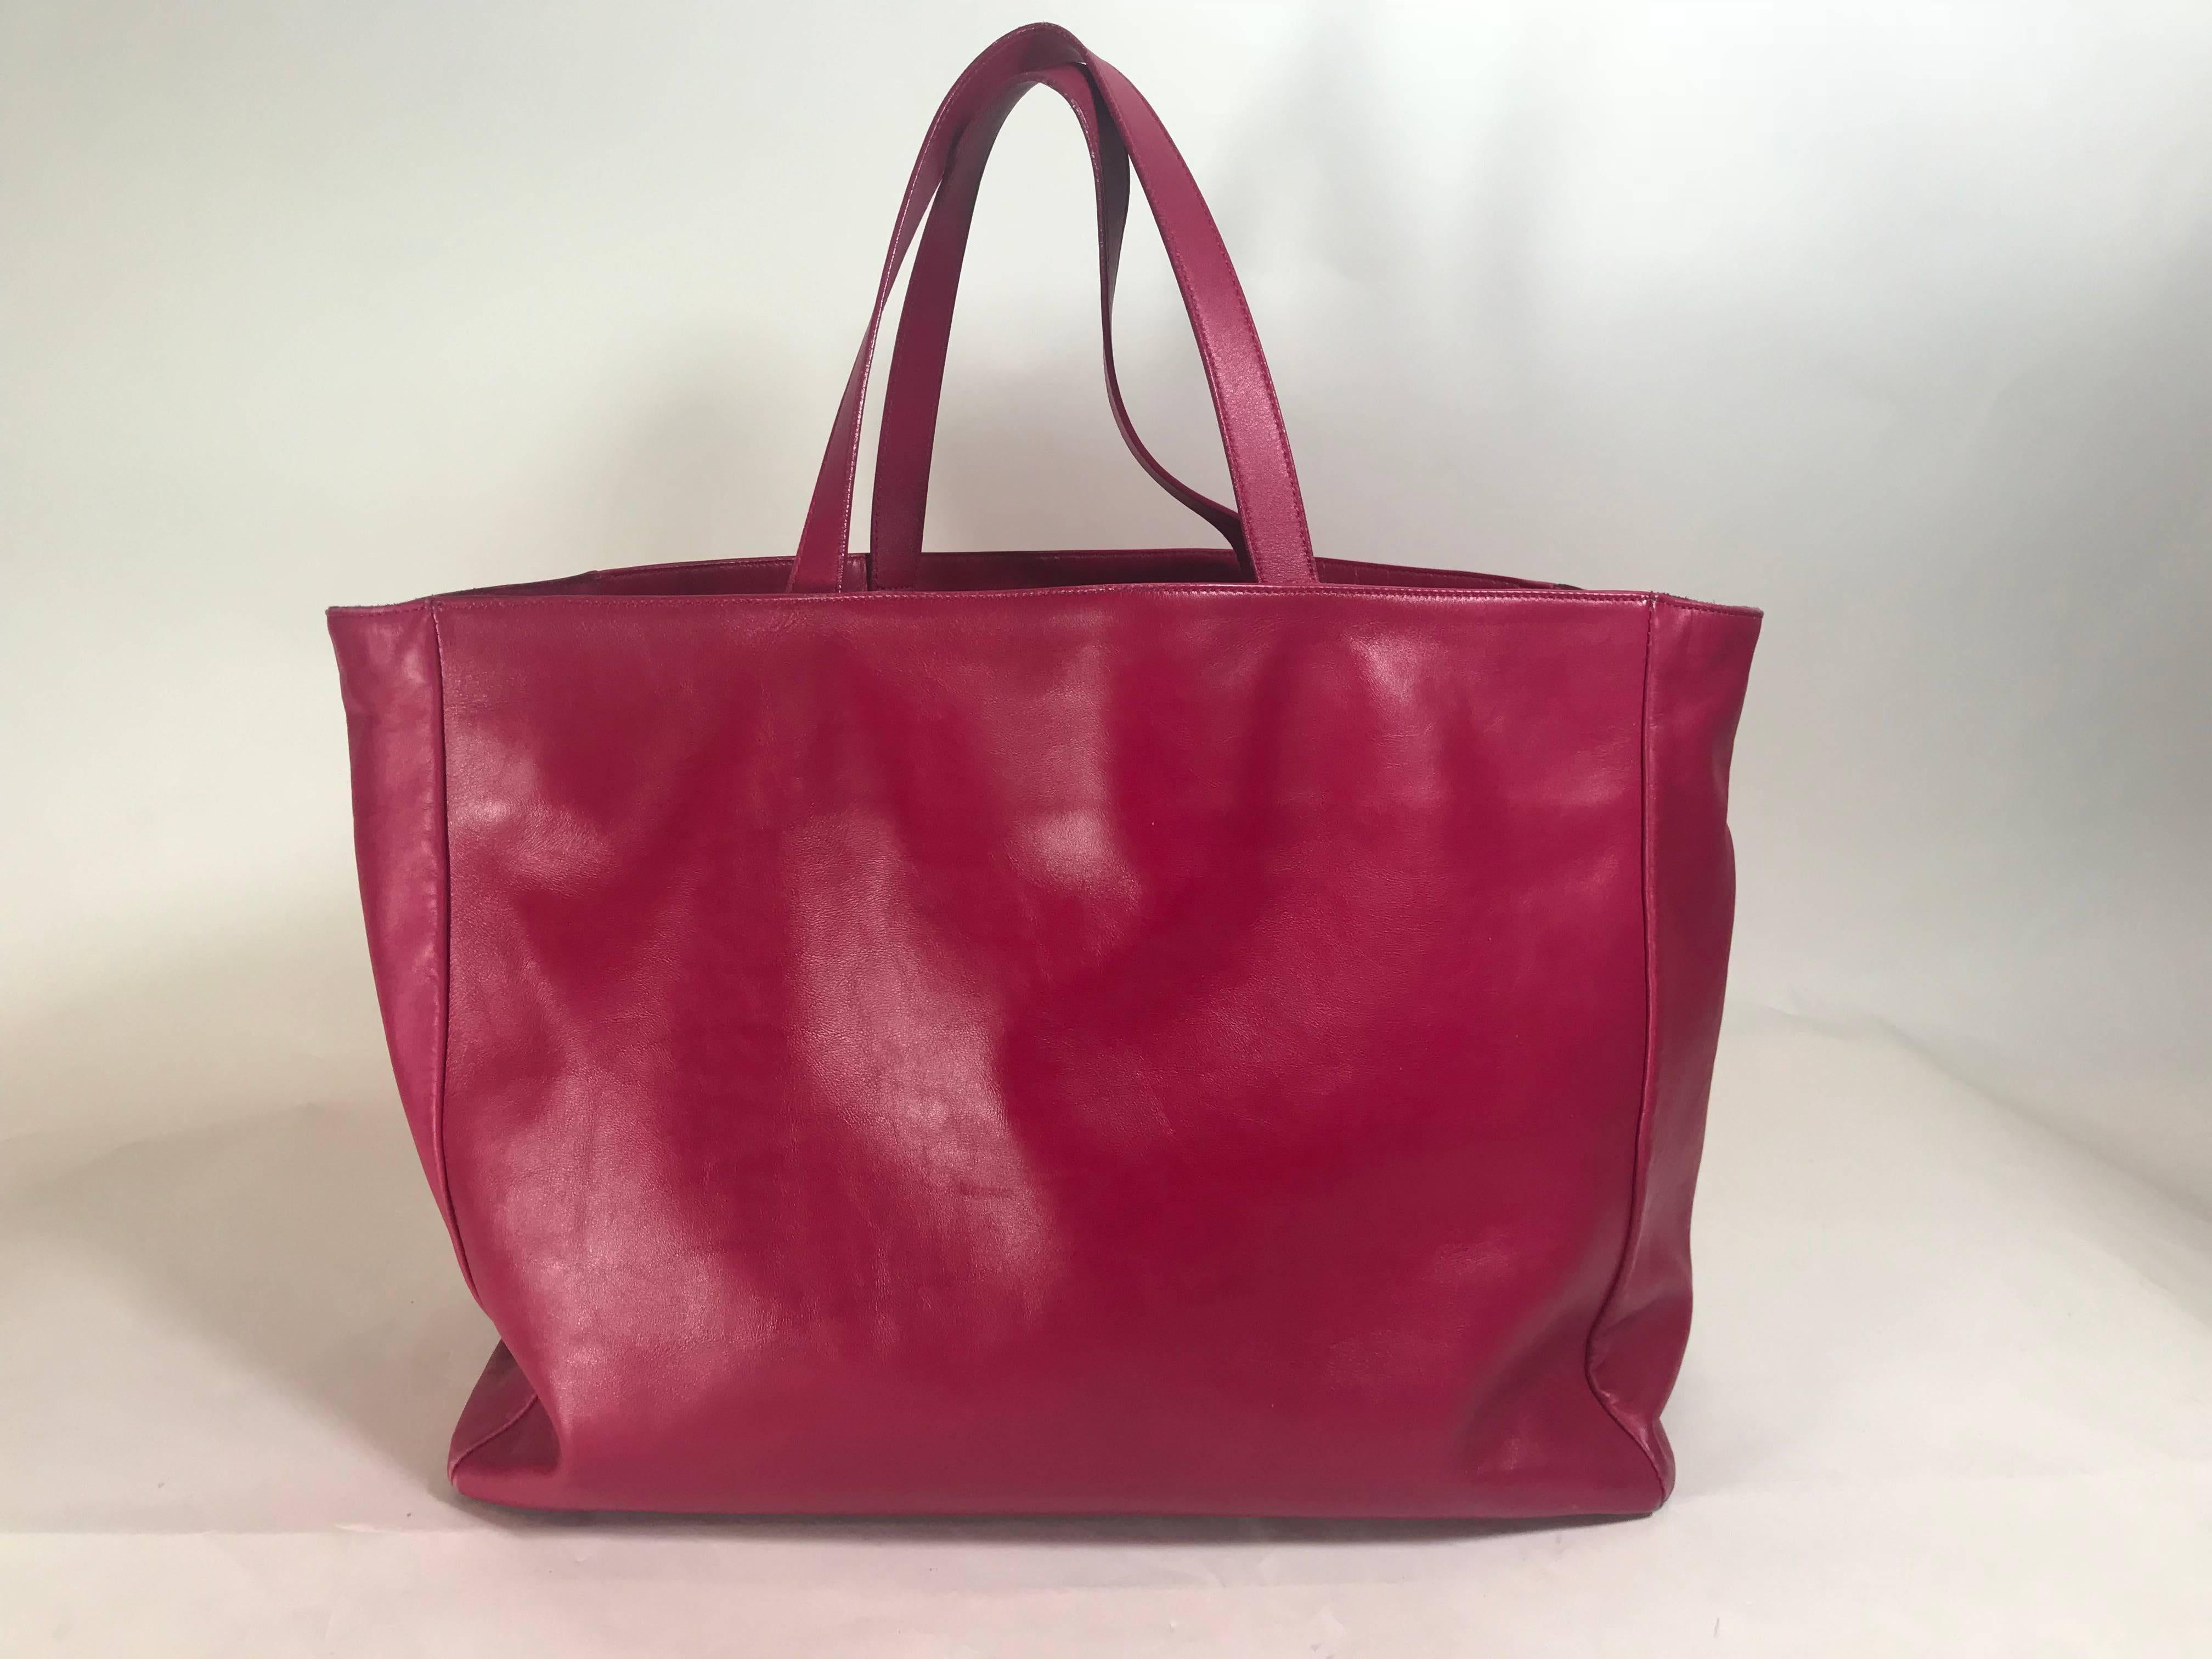 3fd7887c9bbd Saint Laurent Leather Suede Reversible Shopper Tote For Sale at 1stdibs